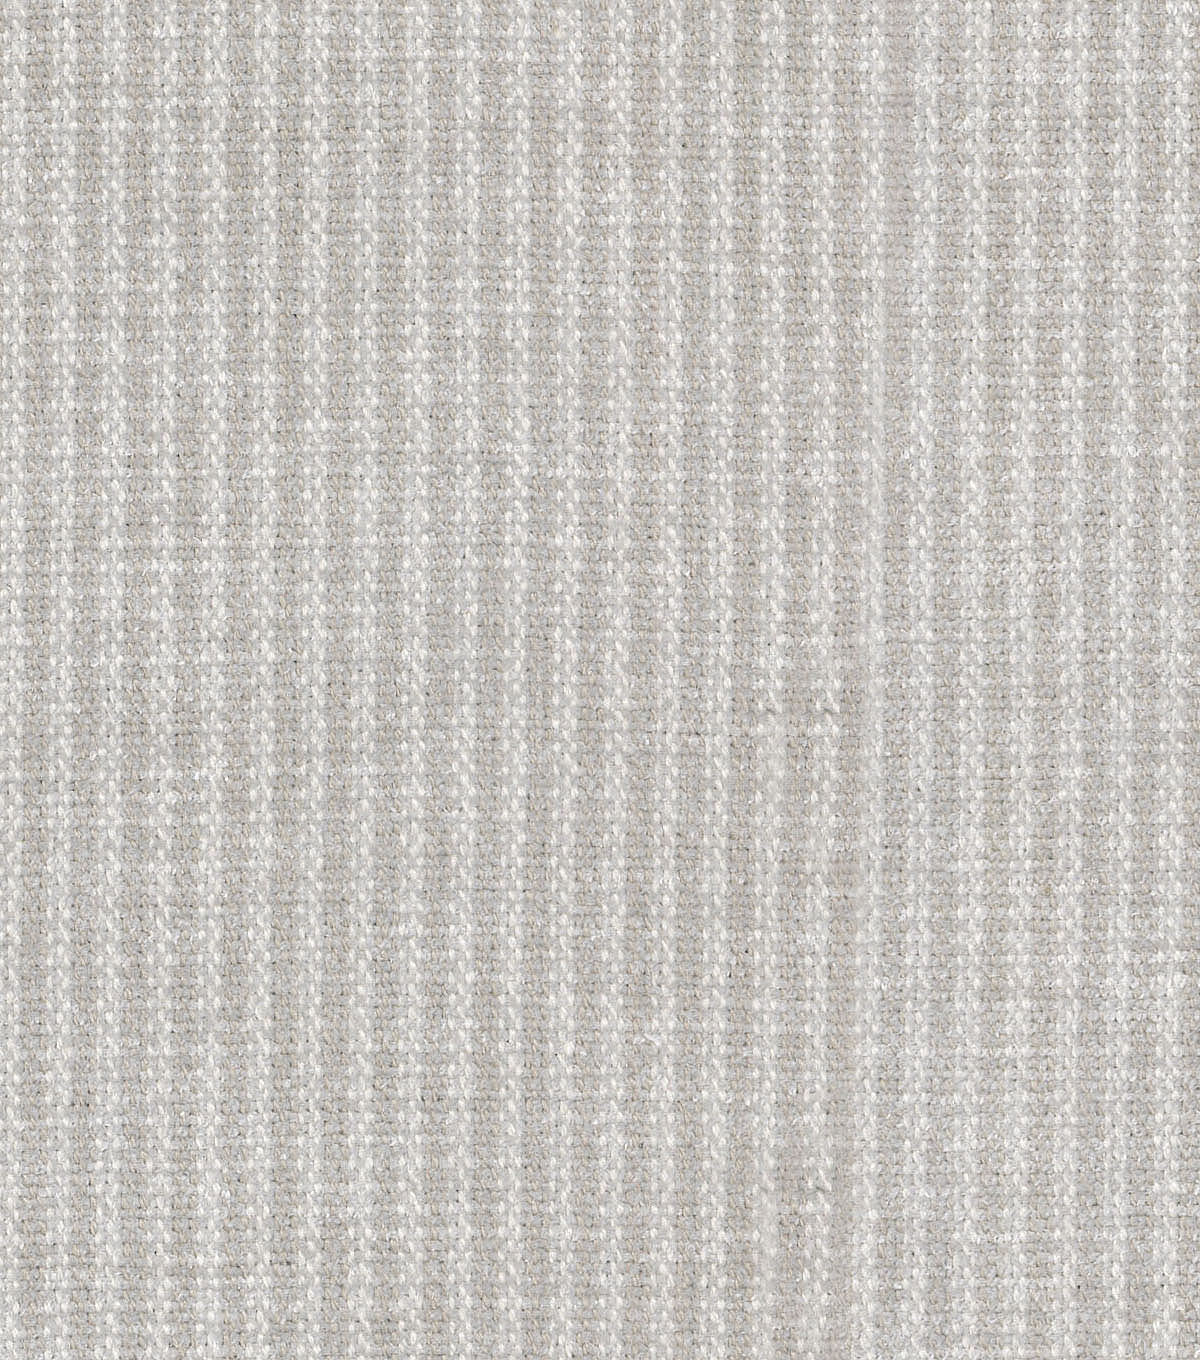 PKL Studio Upholstery Décor Fabric-Slim Fit Seaglass